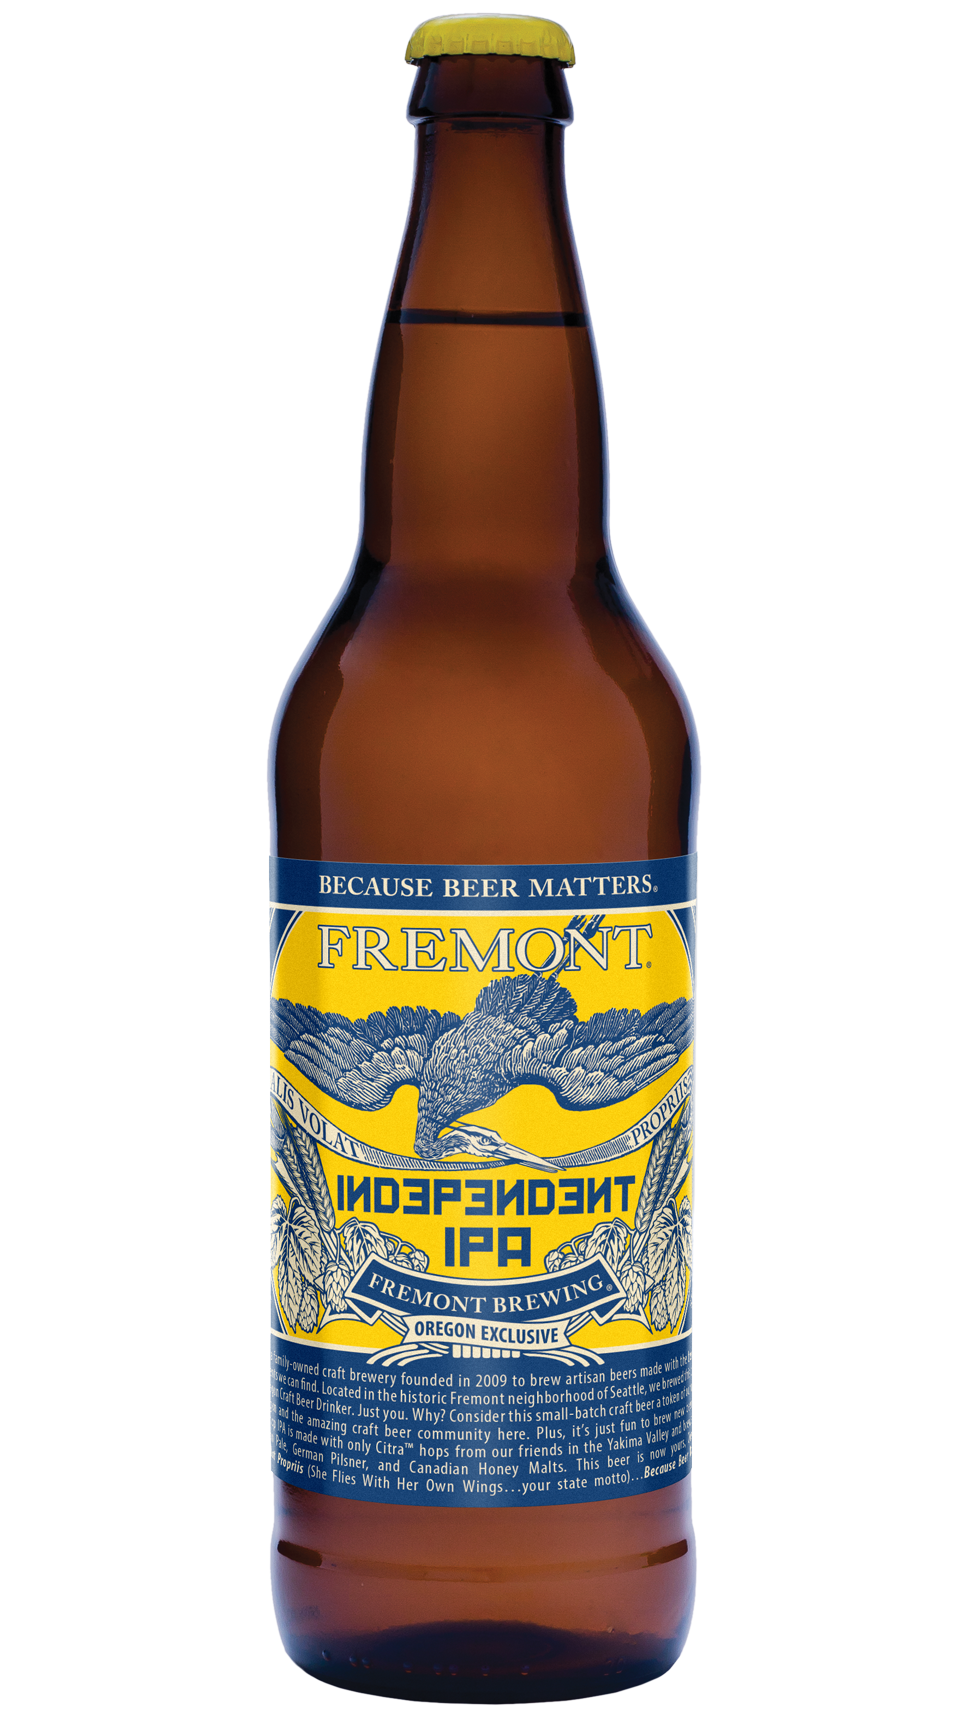 Fremont-Independent-IPA